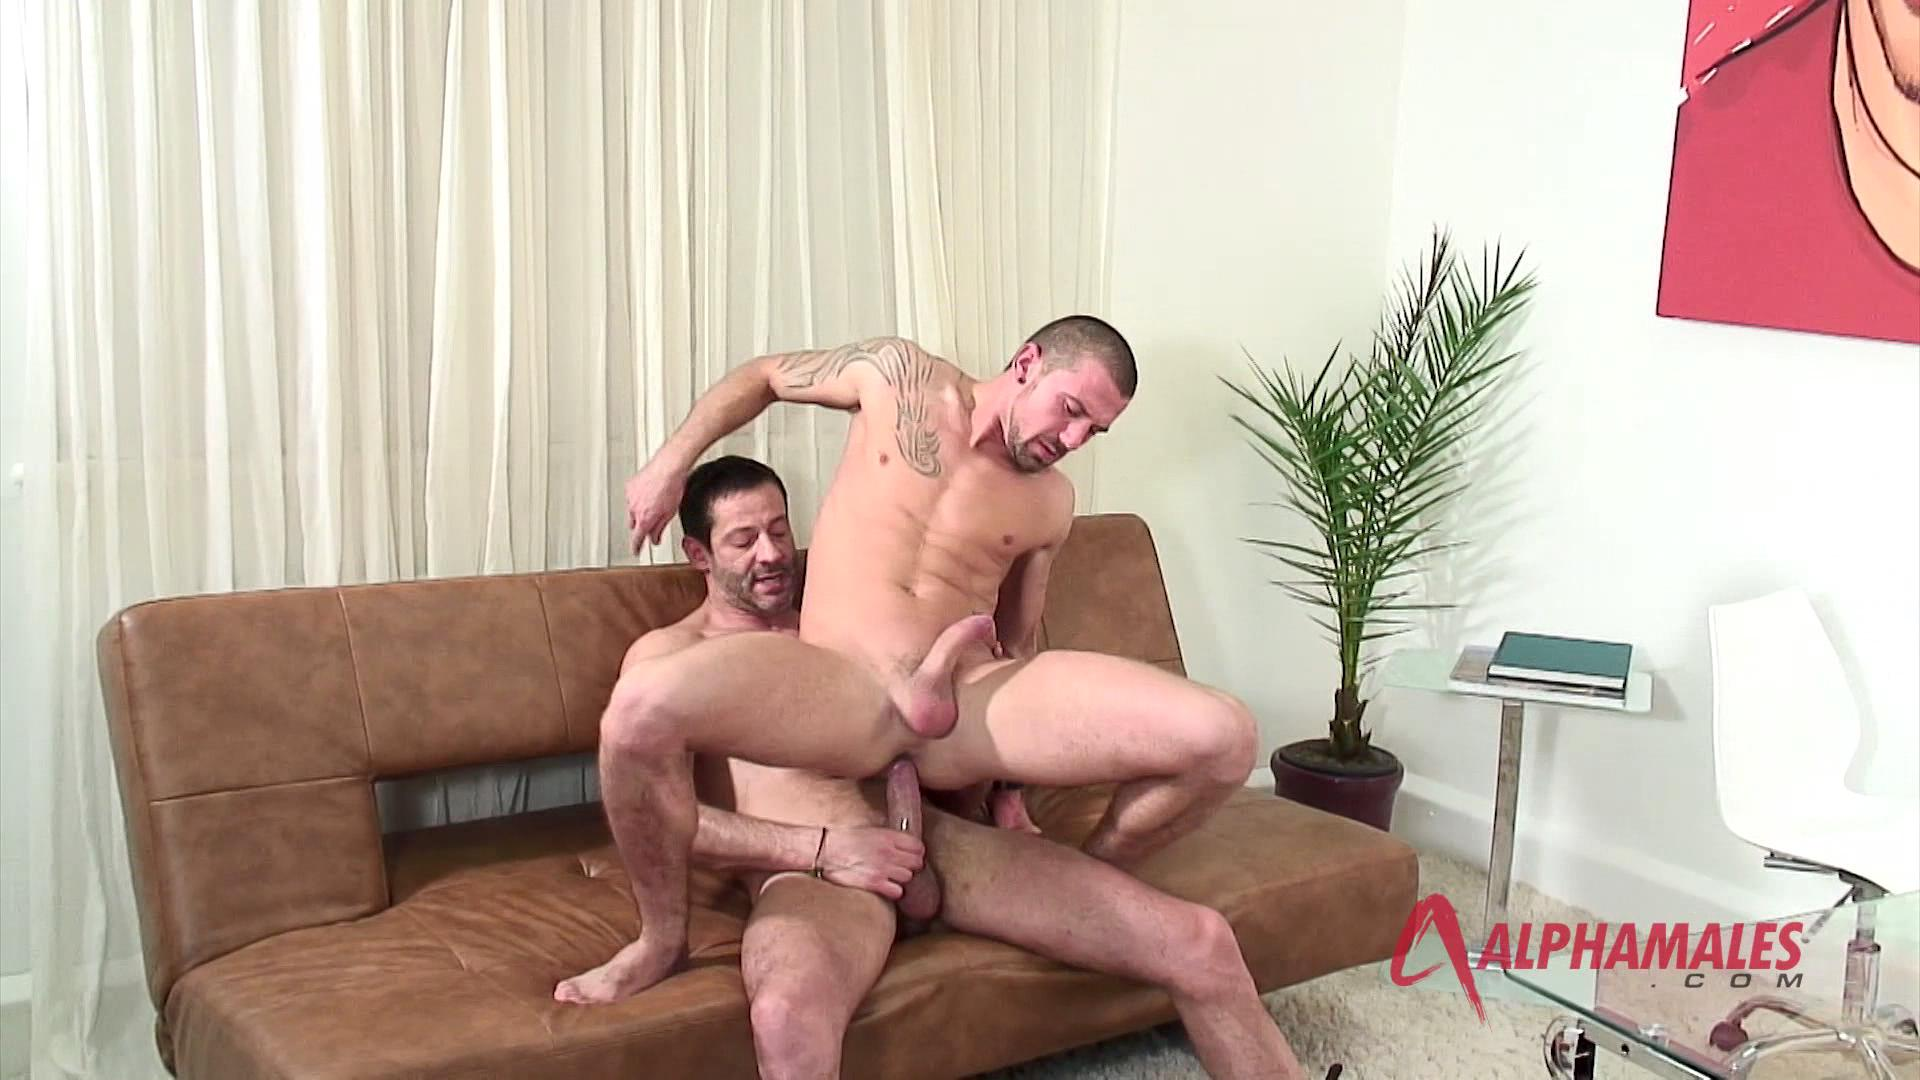 Game On Xvideo gay